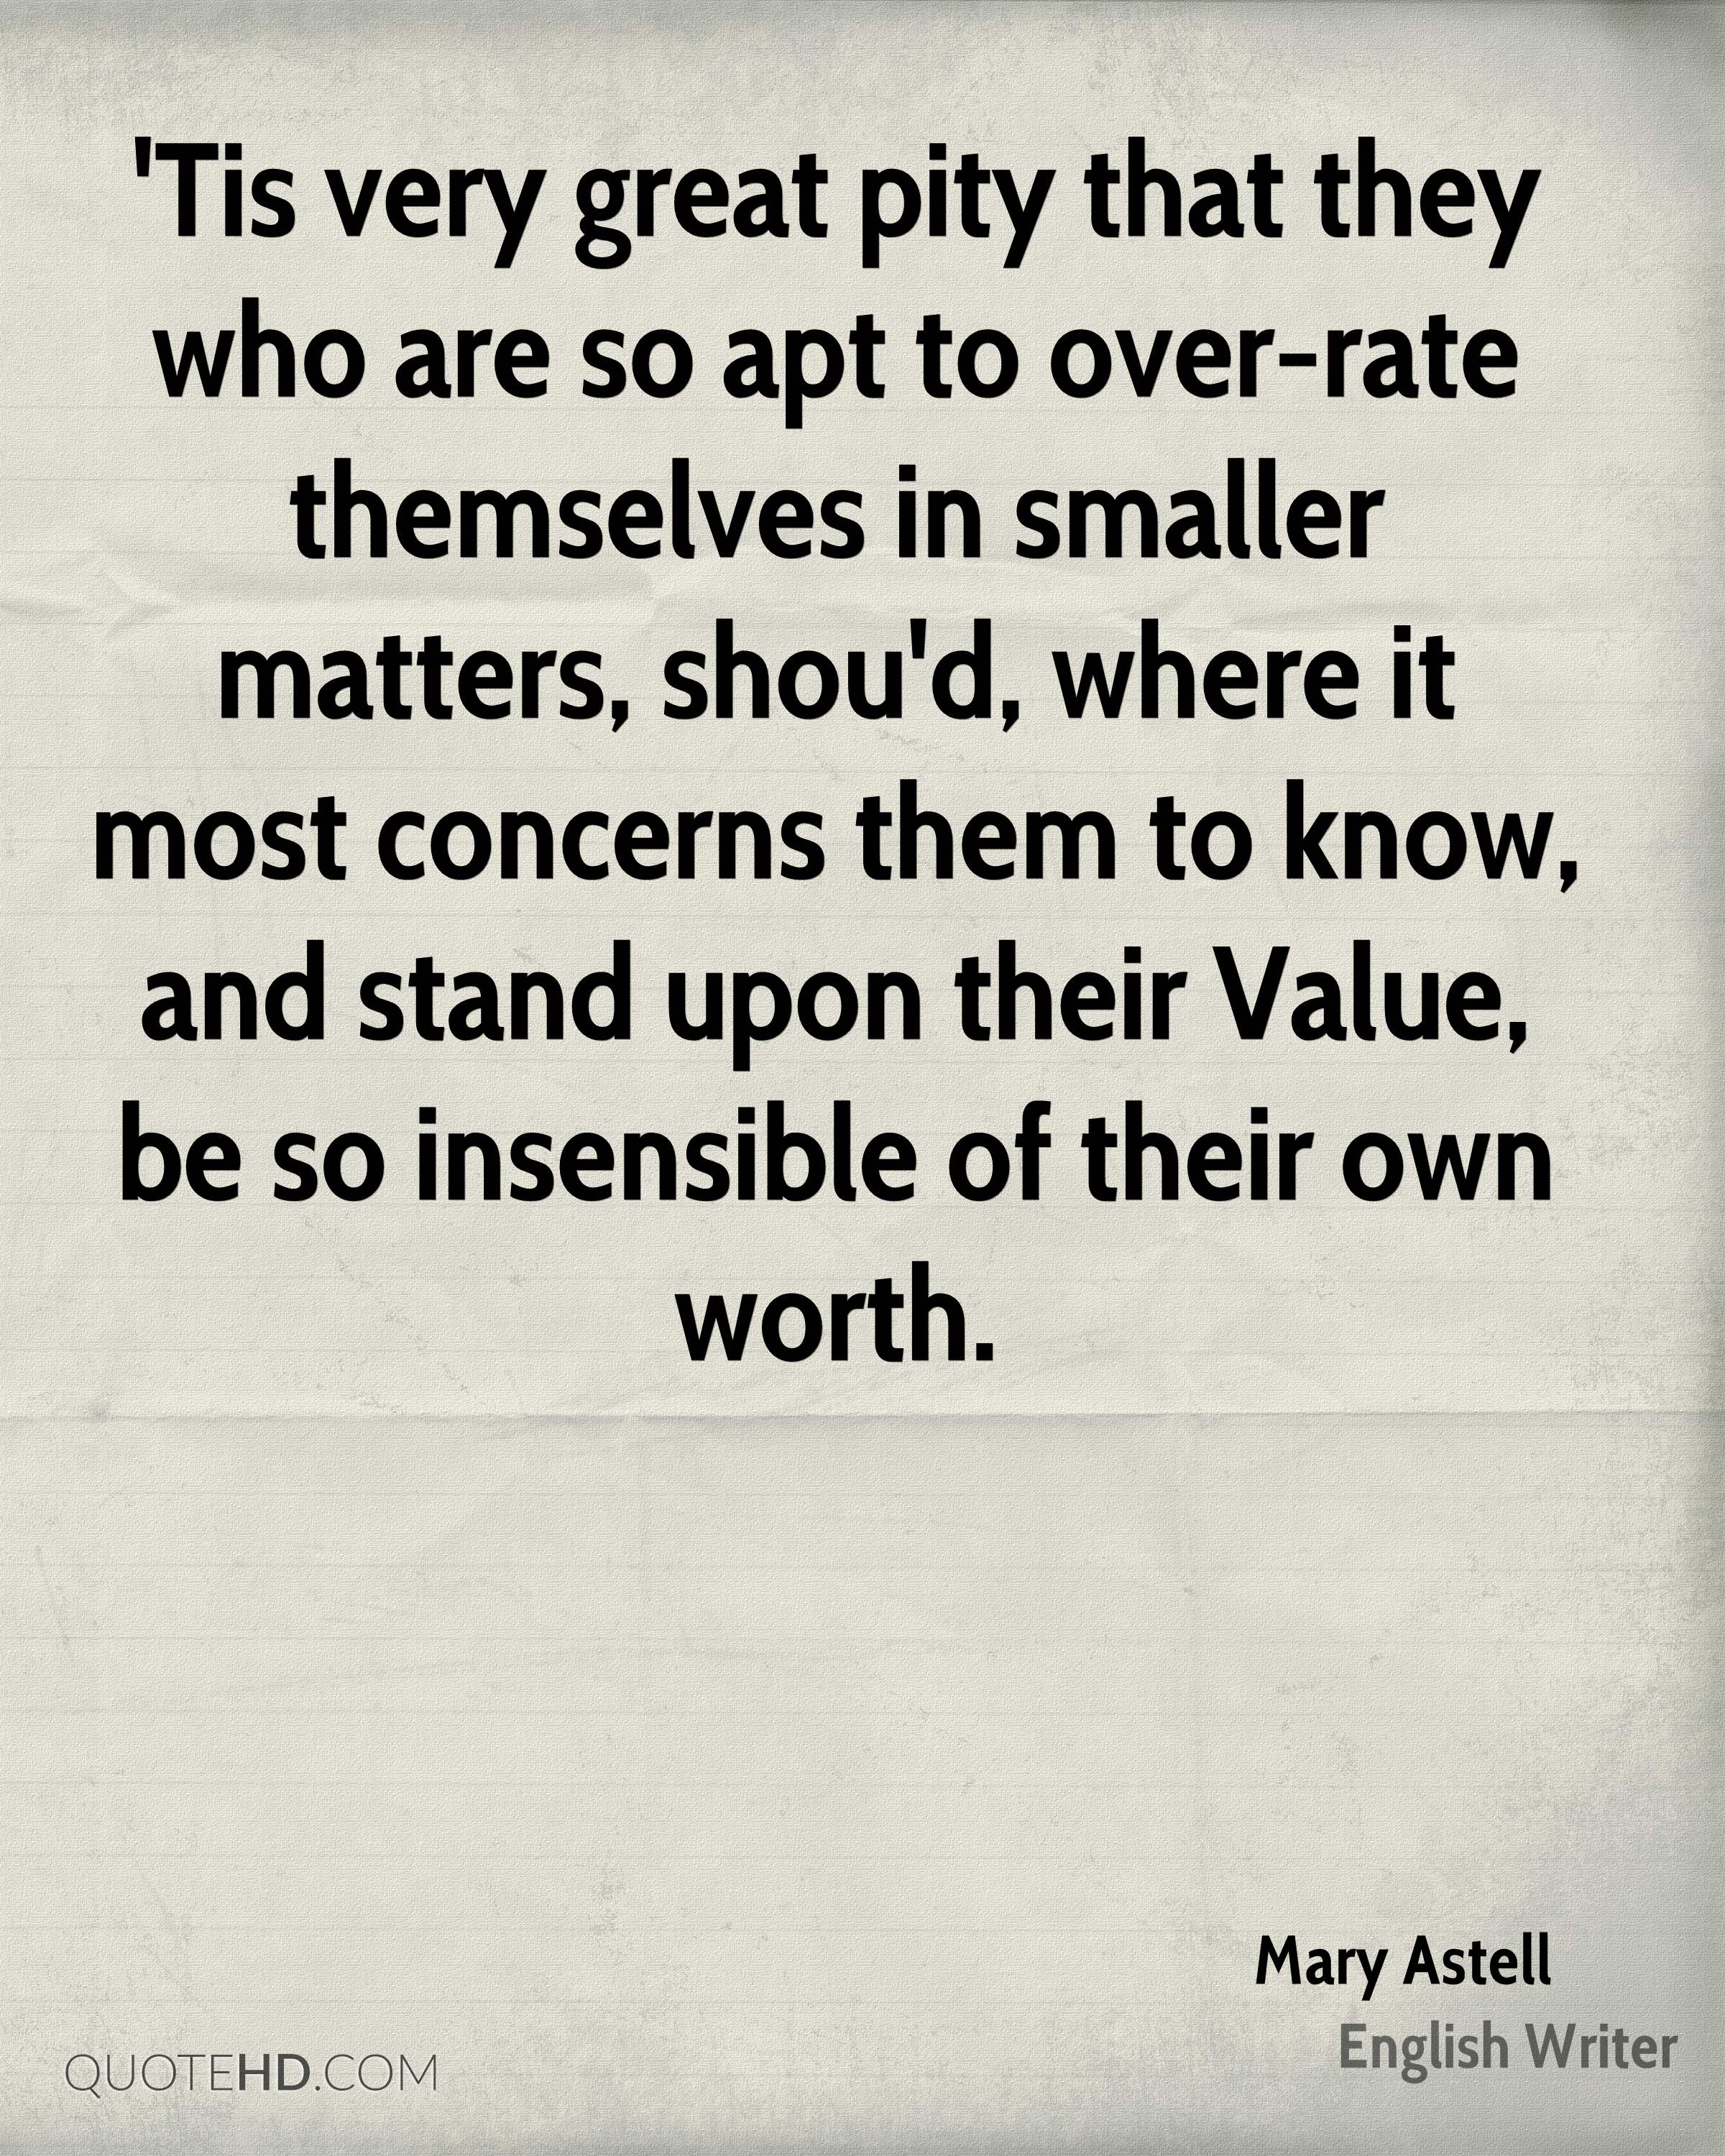 'Tis very great pity that they who are so apt to over-rate themselves in smaller matters, shou'd, where it most concerns them to know, and stand upon their Value, be so insensible of their own worth.